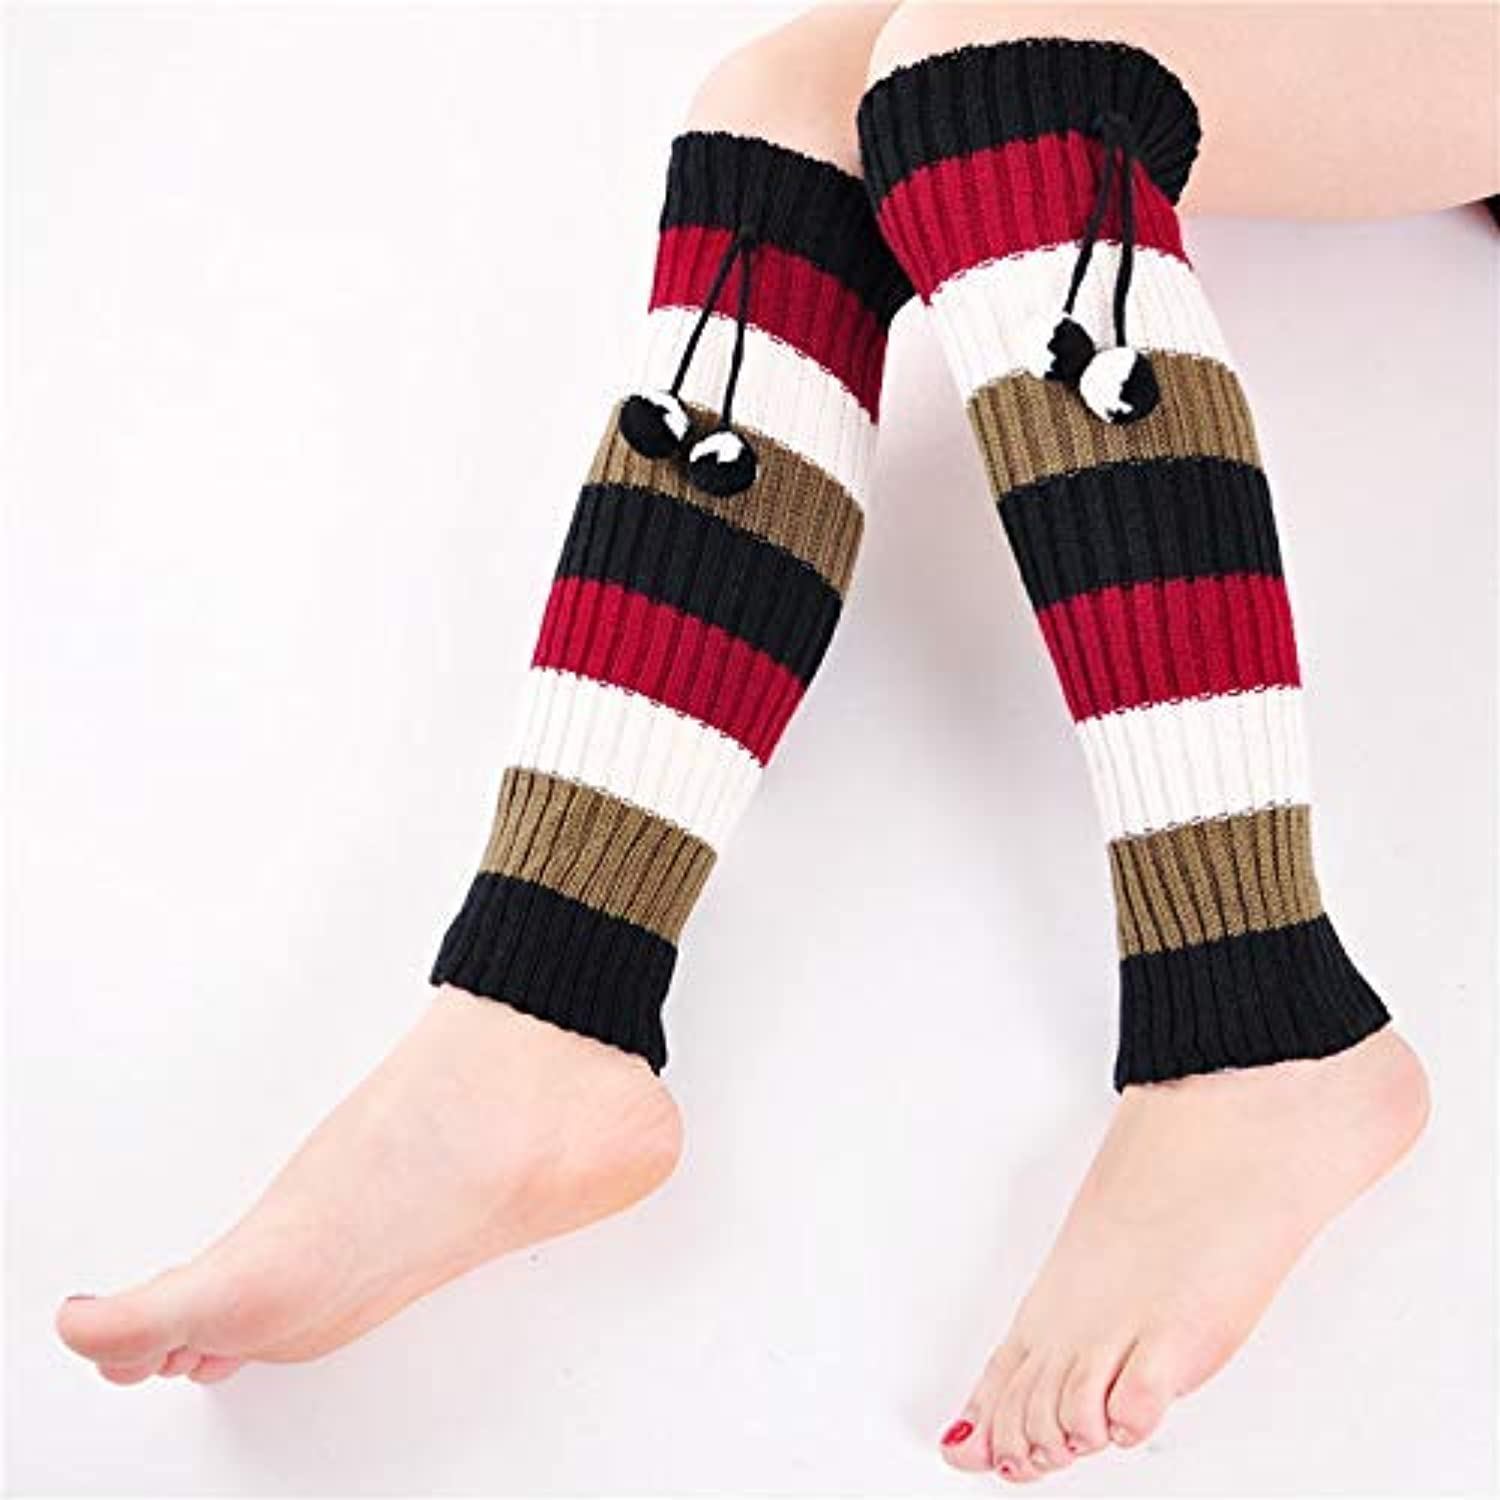 Comfortable Arm Warmer Leg Stocking Autumn and Winter Socks, Long Knee Pads, Warm Leg Sets, Striped Hair Ball Socks, Piles of (color   Red)